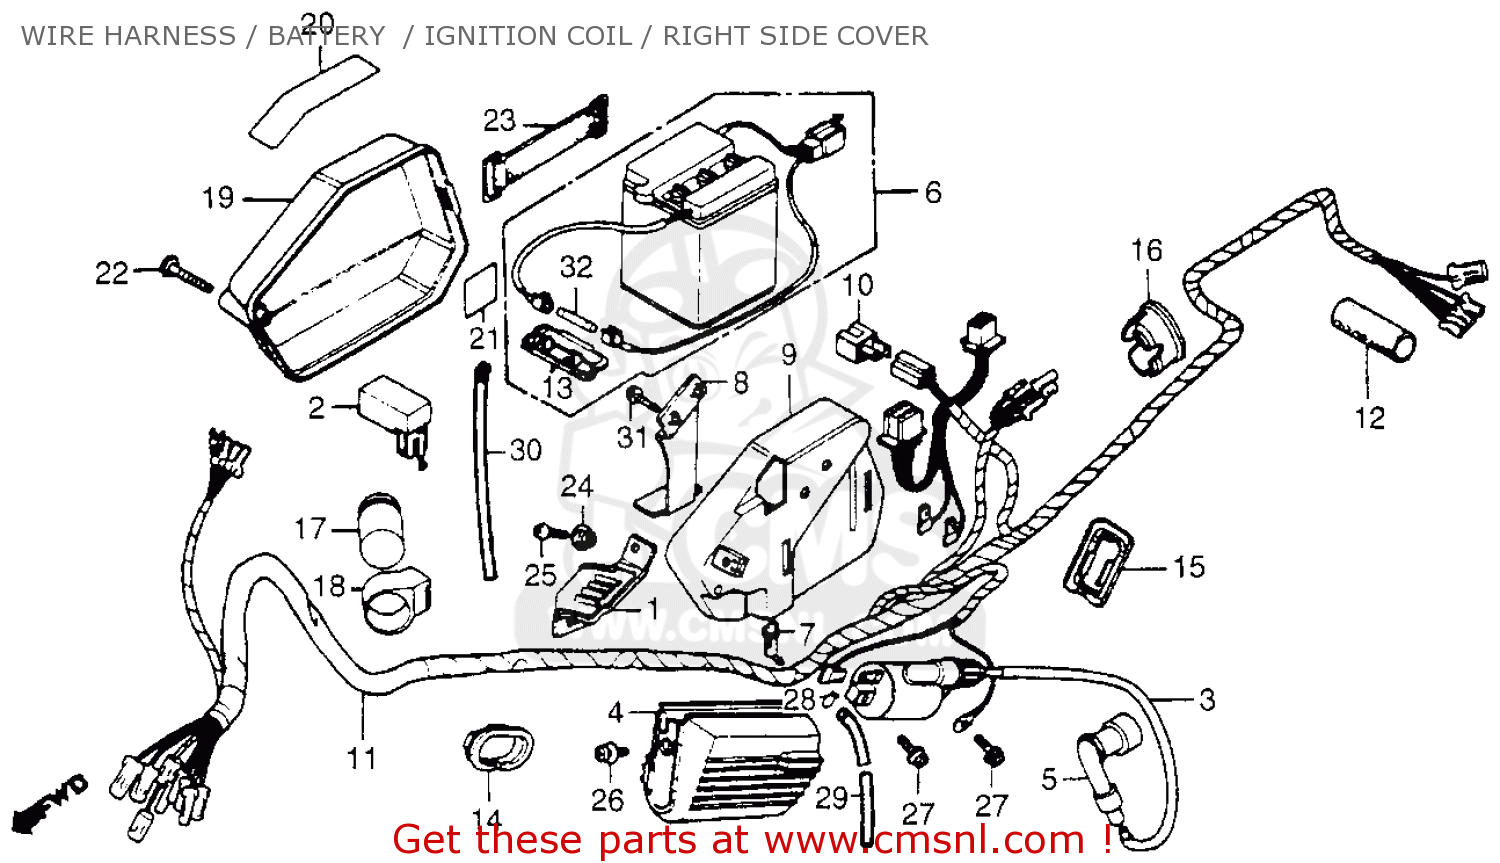 honda nc50 express 1983 d usa wire harnessbattery ignition coilright side cover bighu0147f6c17 4669 gif